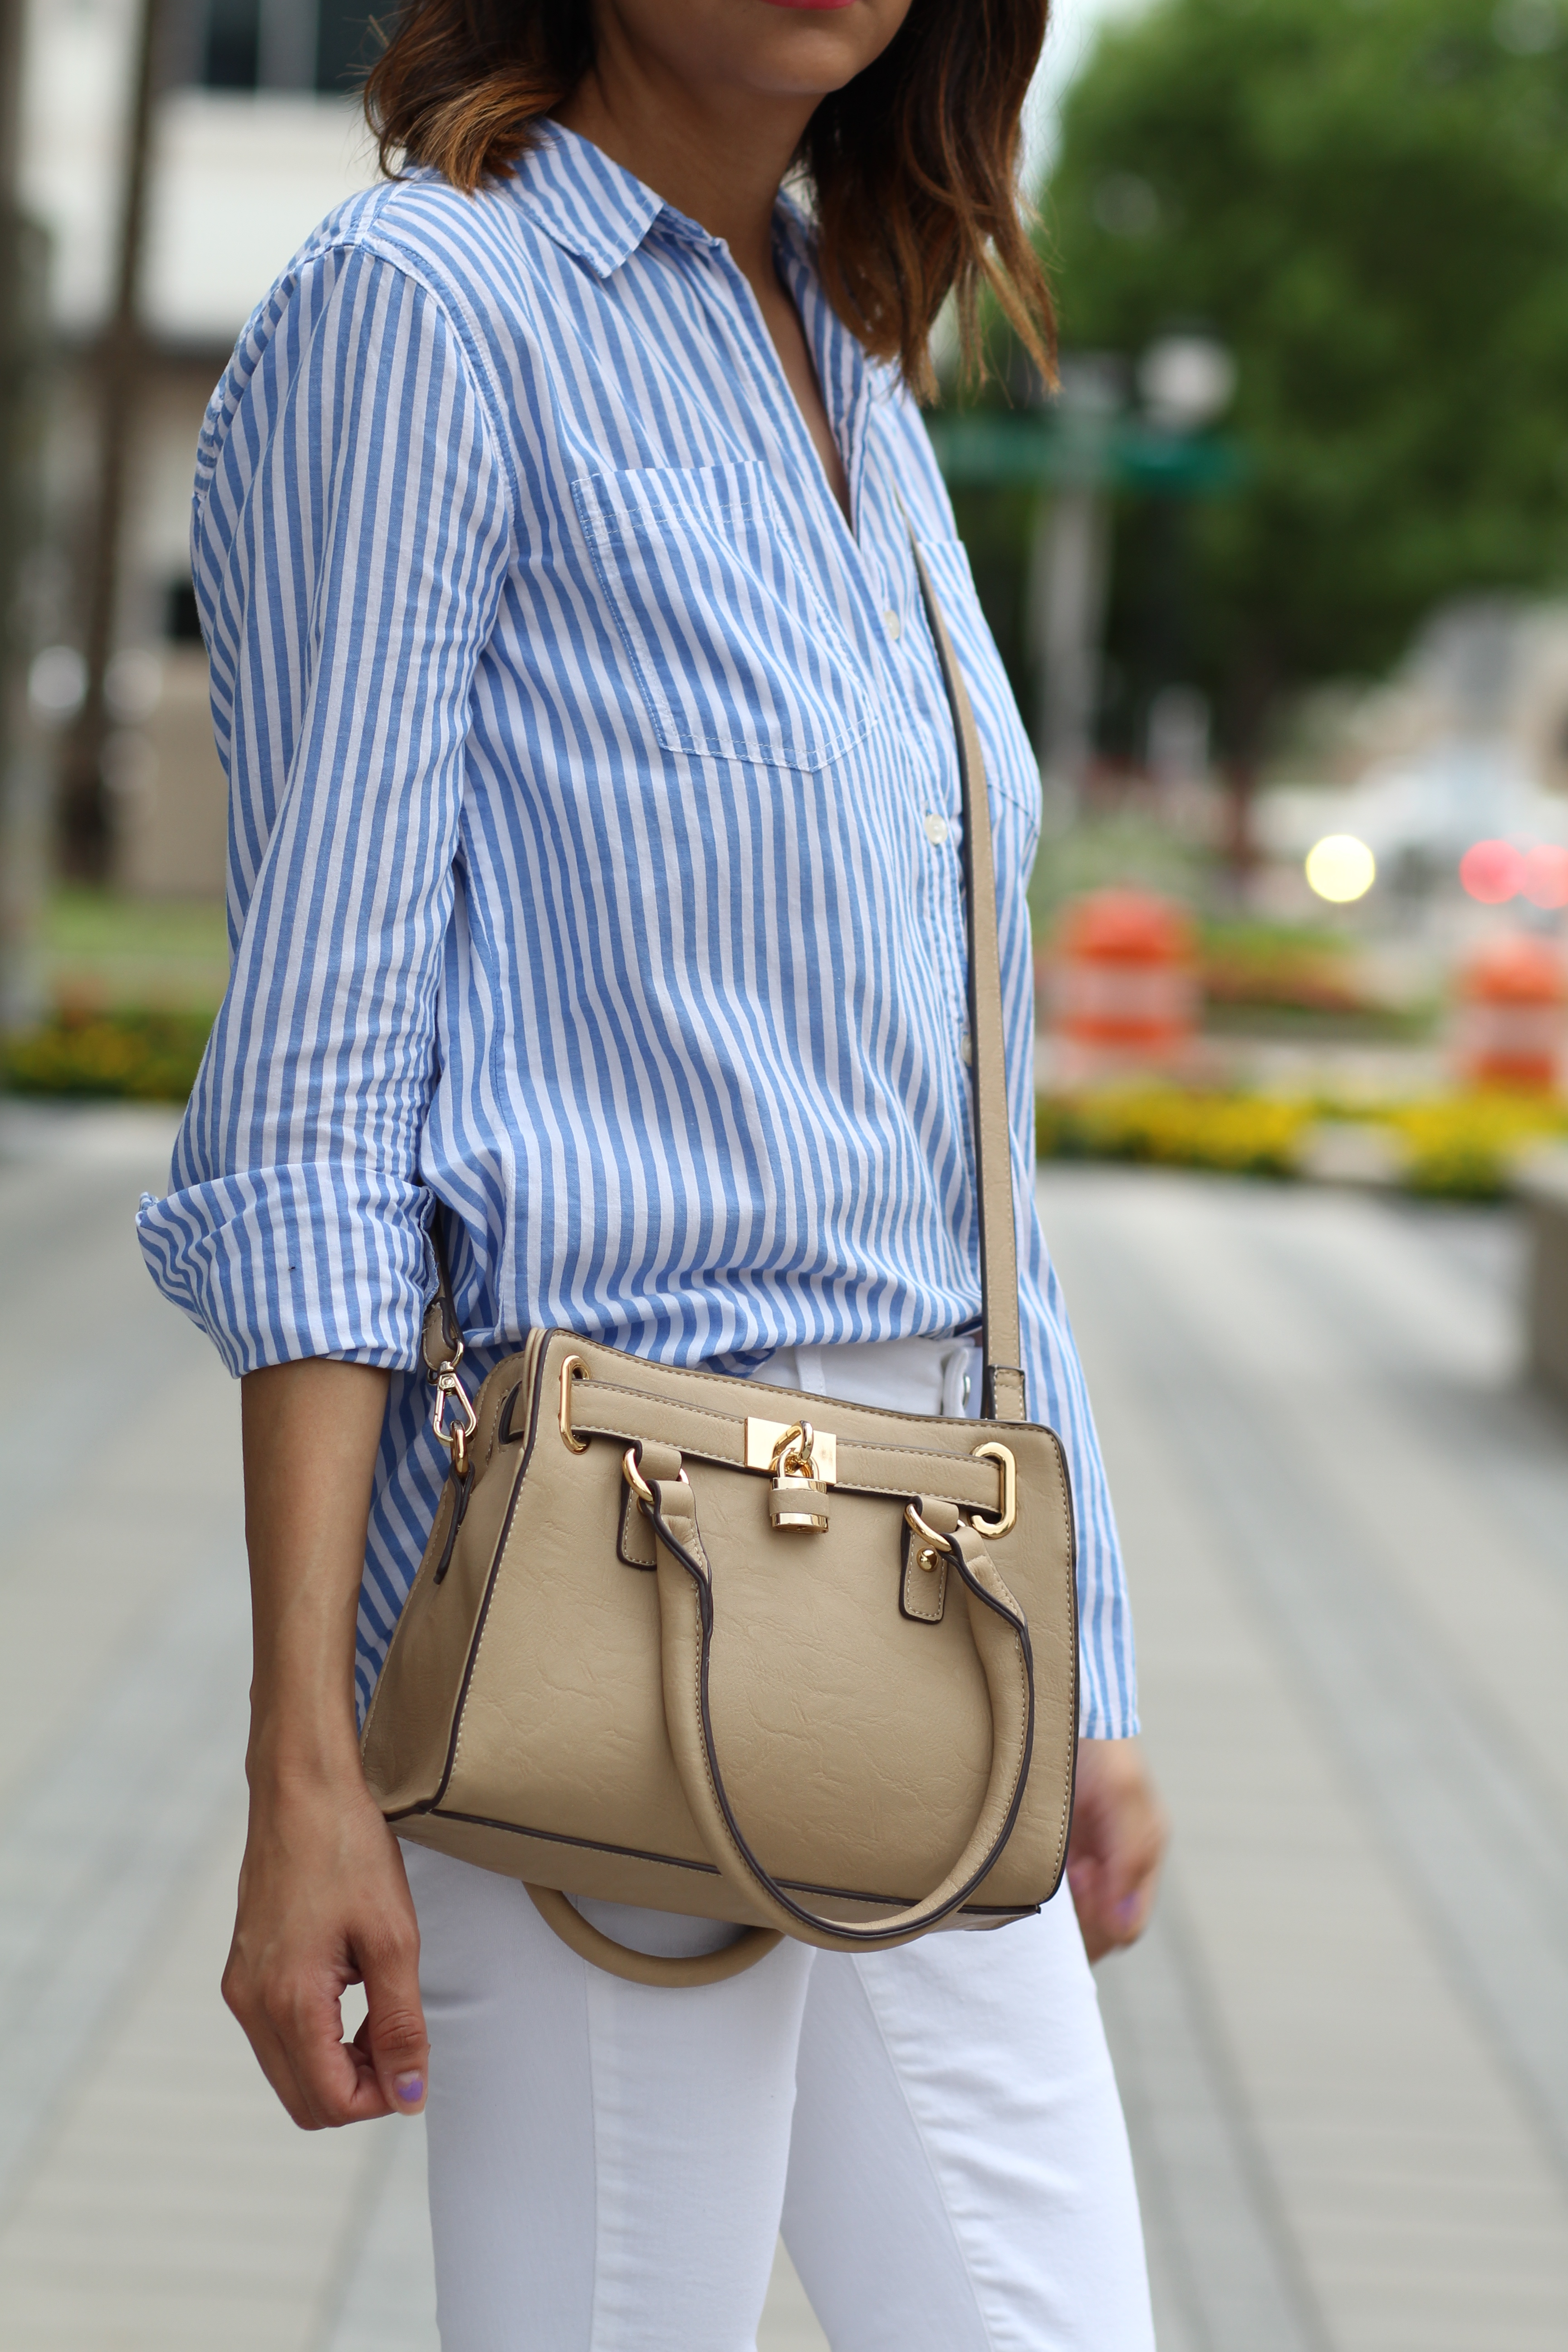 Vertical Stripes | Nude Bag | White Jeans | Summer Outfit Idea